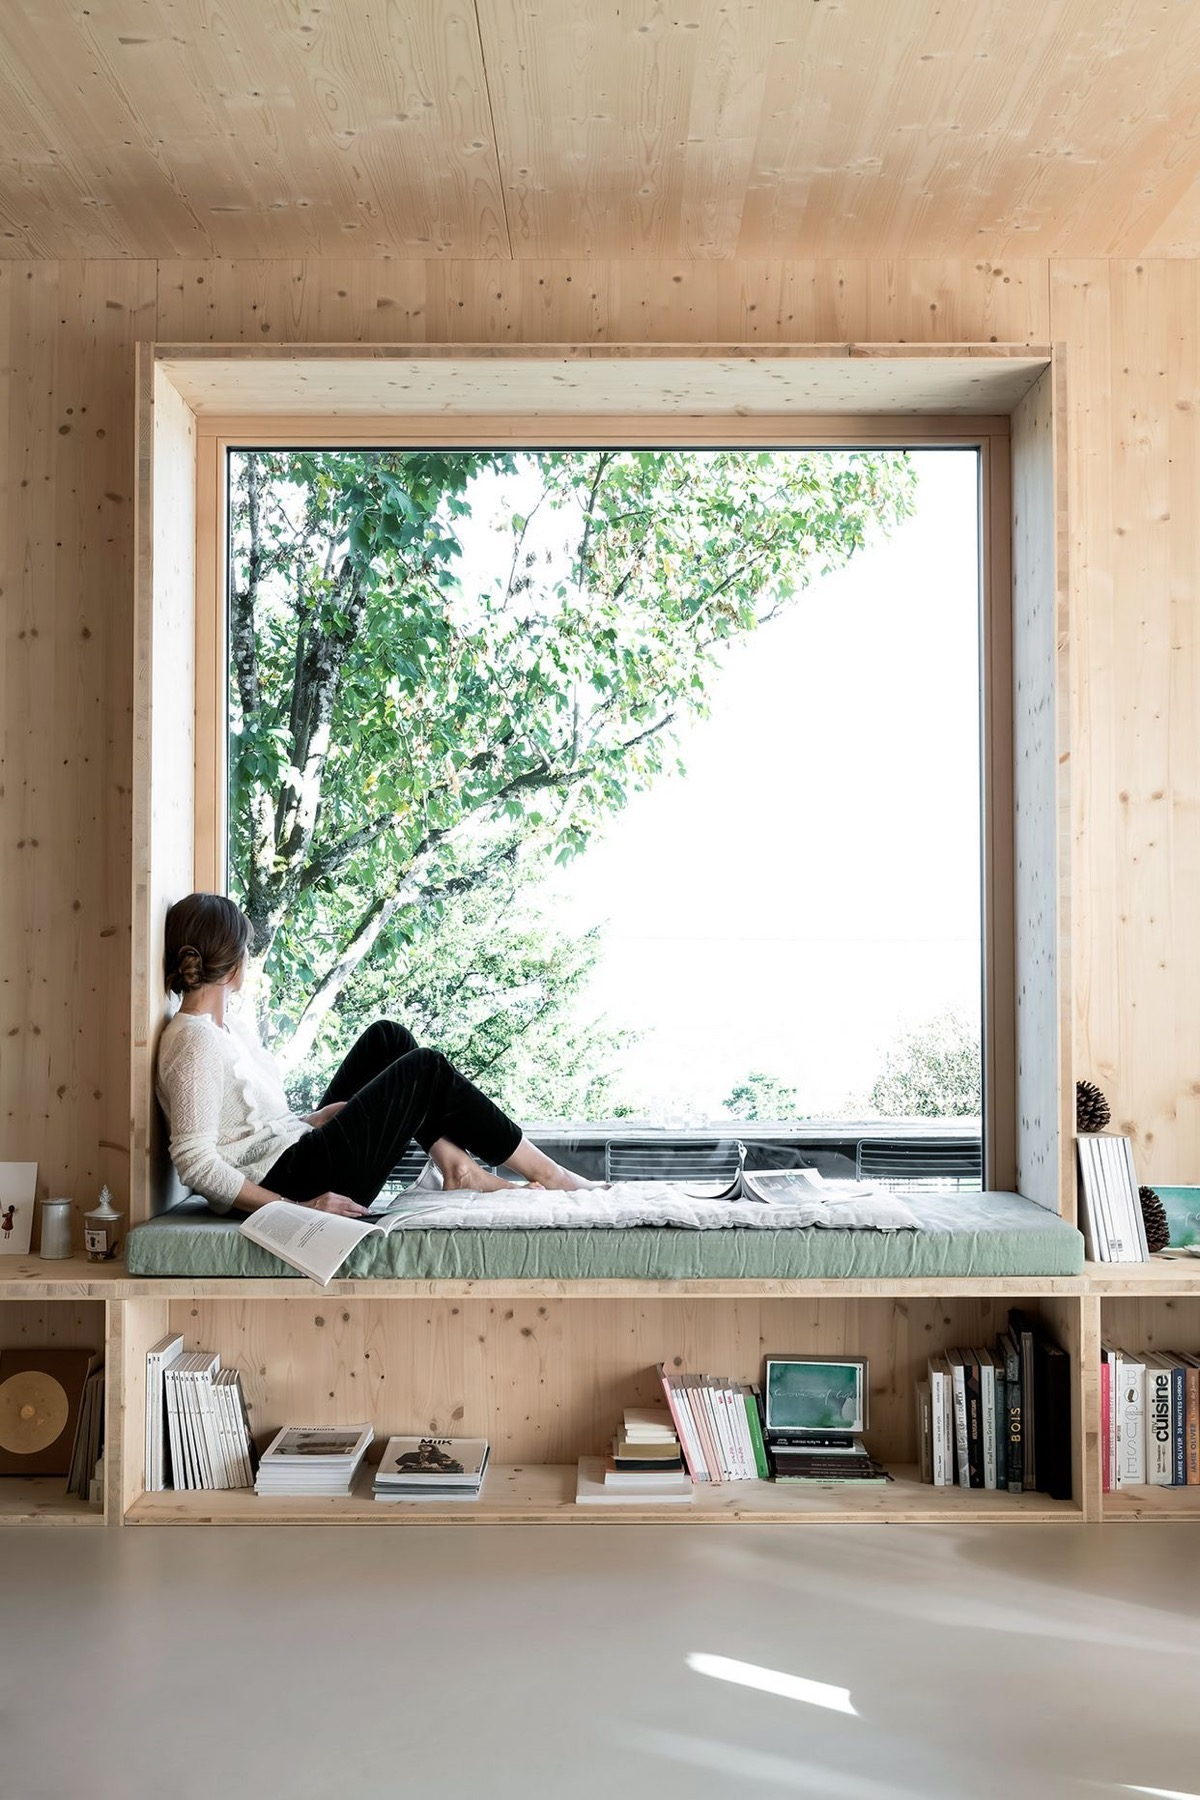 51 Window Seats To Make You Reimagine The Lowly Window Sill